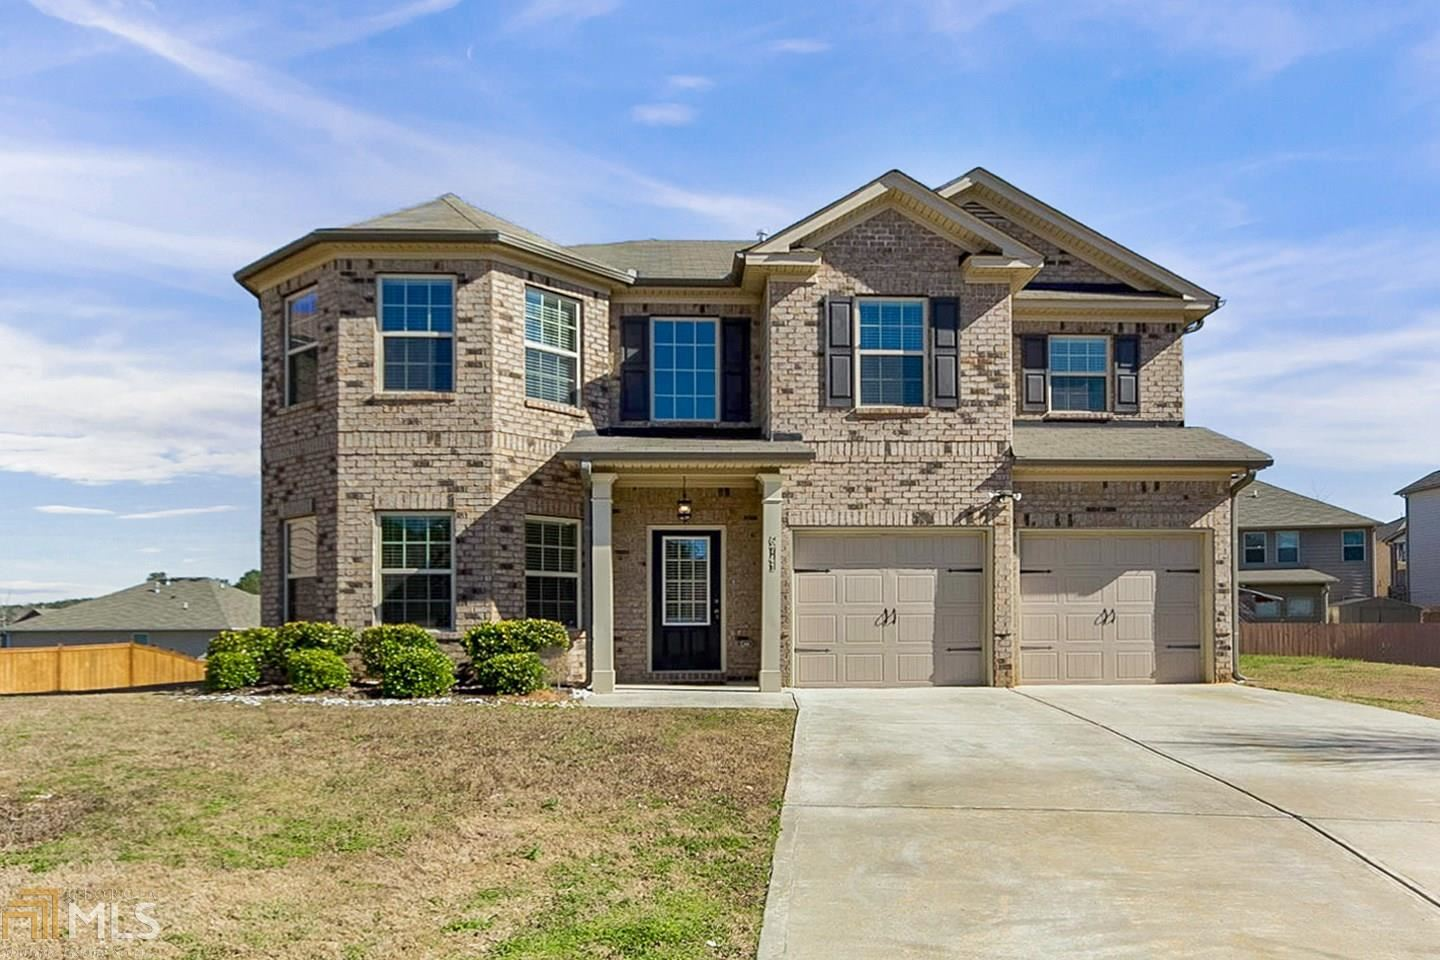 6741 Oak Hill, Fairburn, GA 30213 - #: 8738532